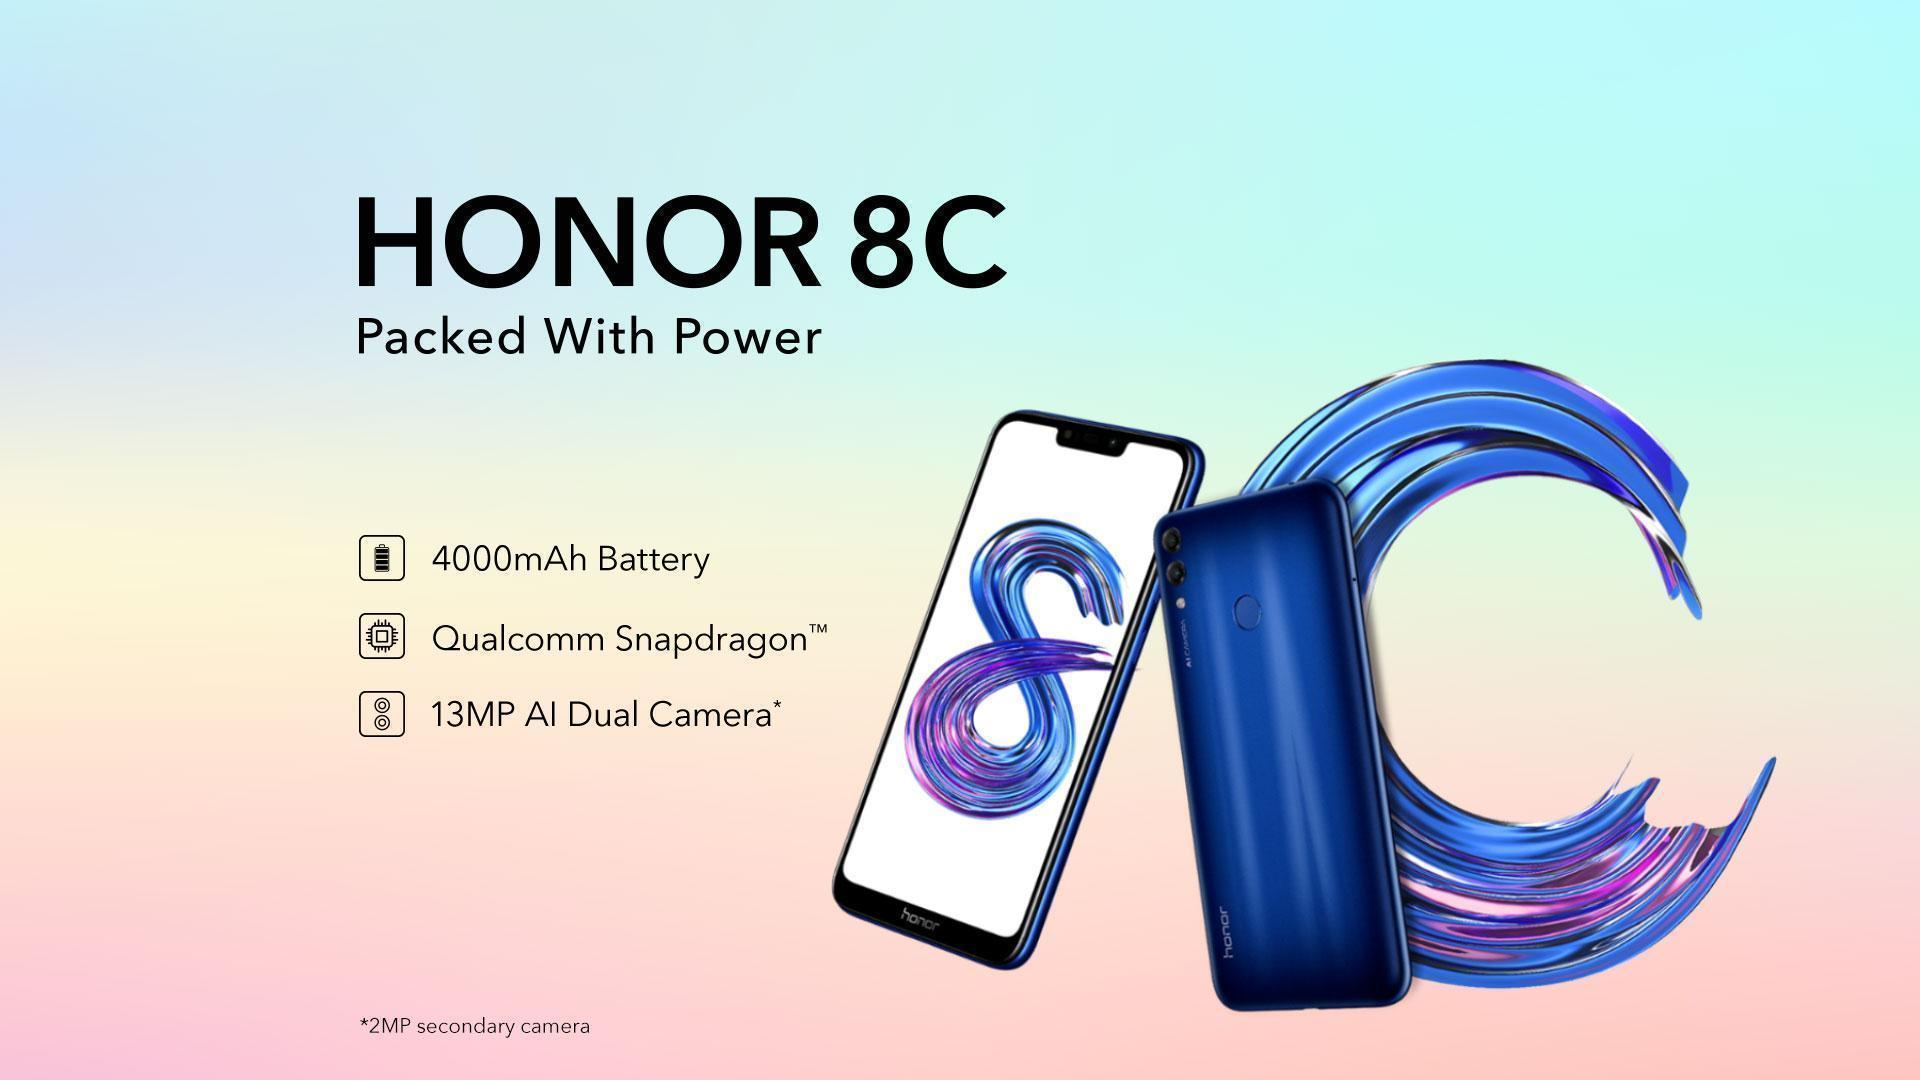 Honor 8C Qualcomm Snapdragon 632